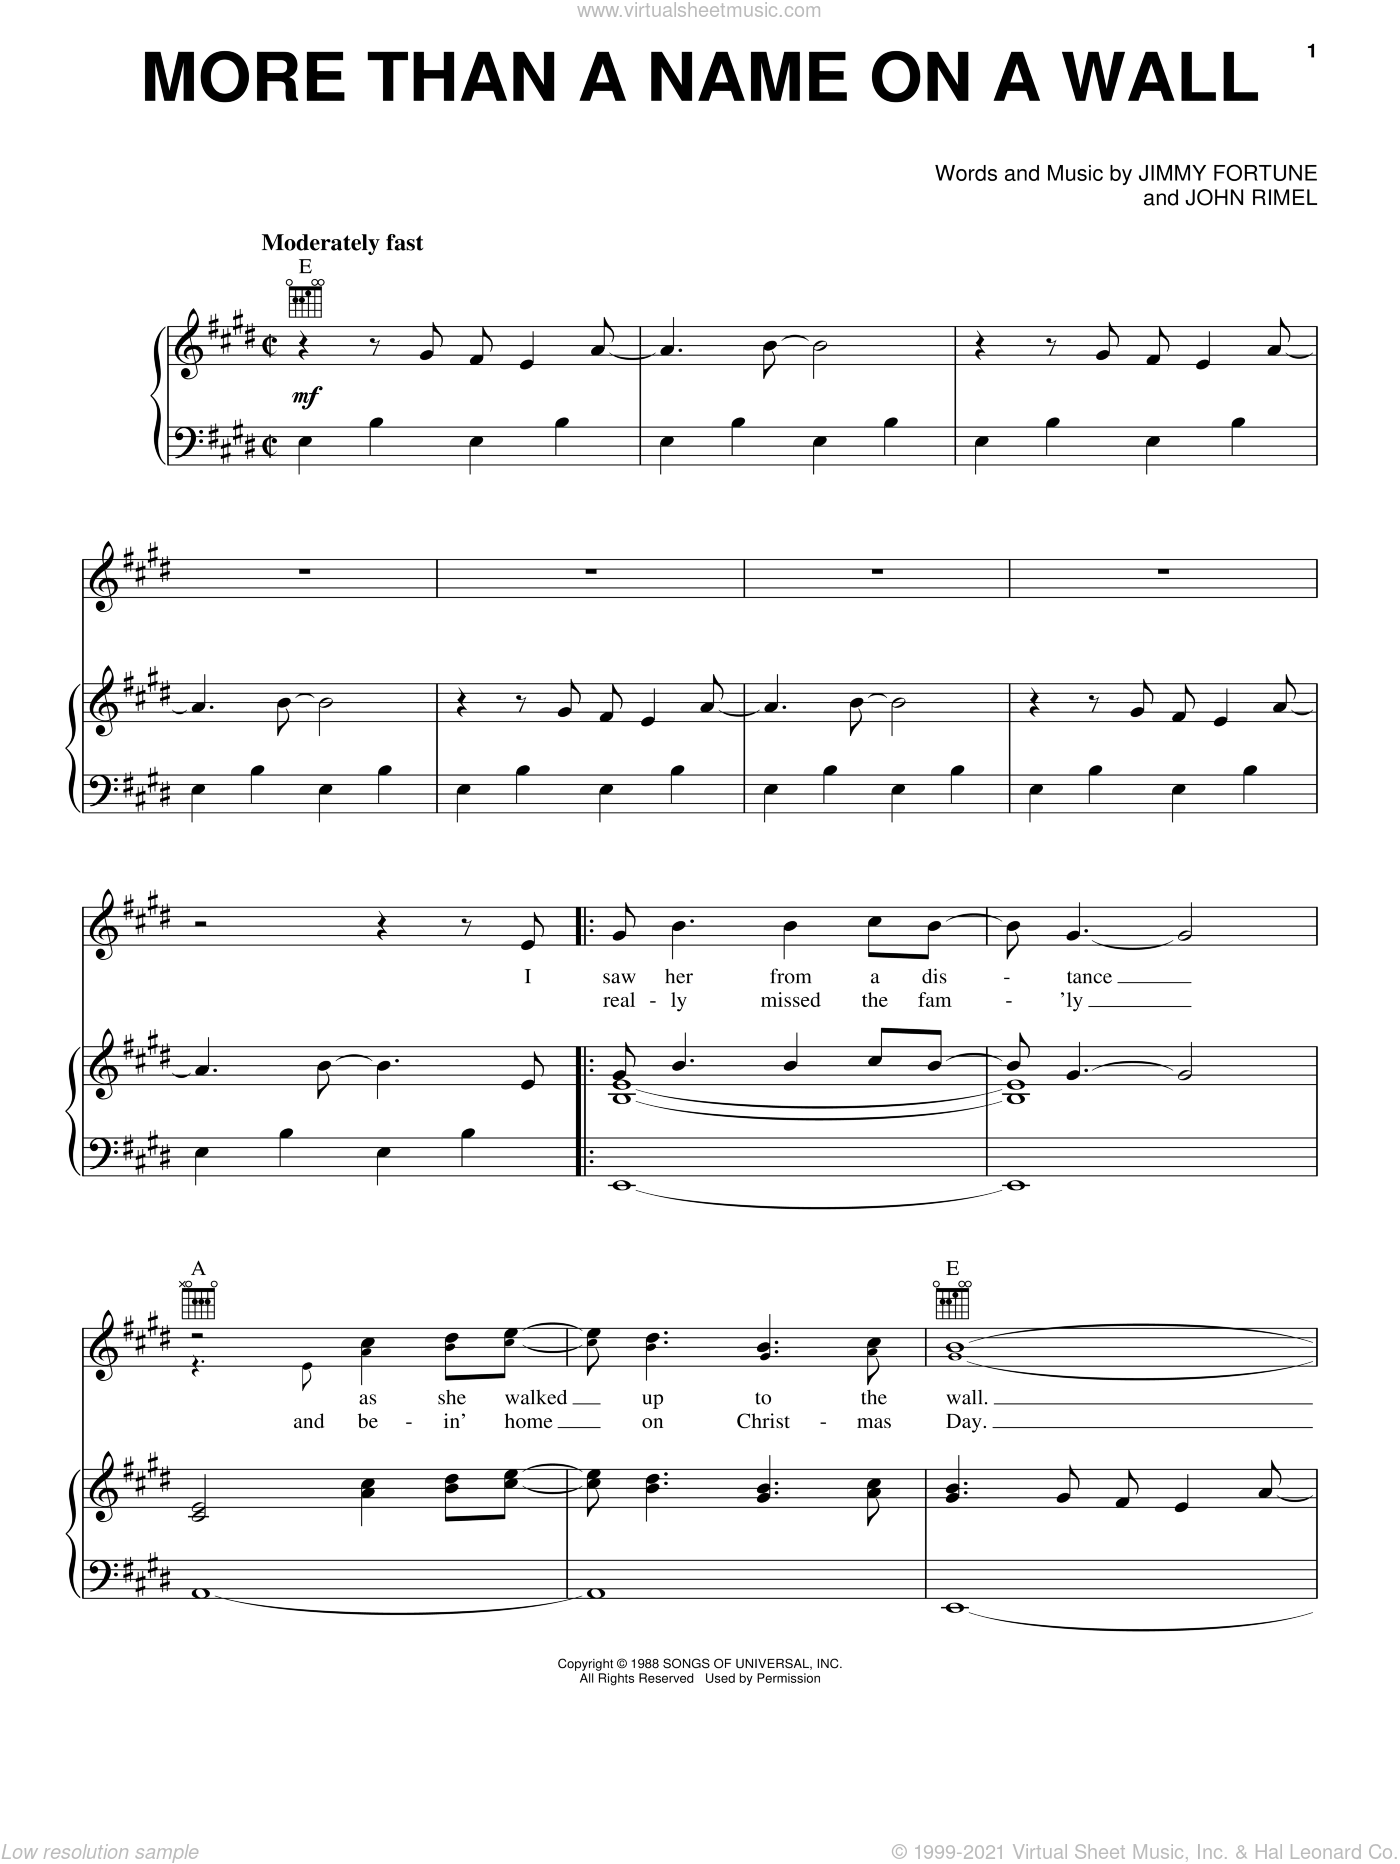 More Than A Name On A Wall sheet music for voice, piano or guitar by John Rimel